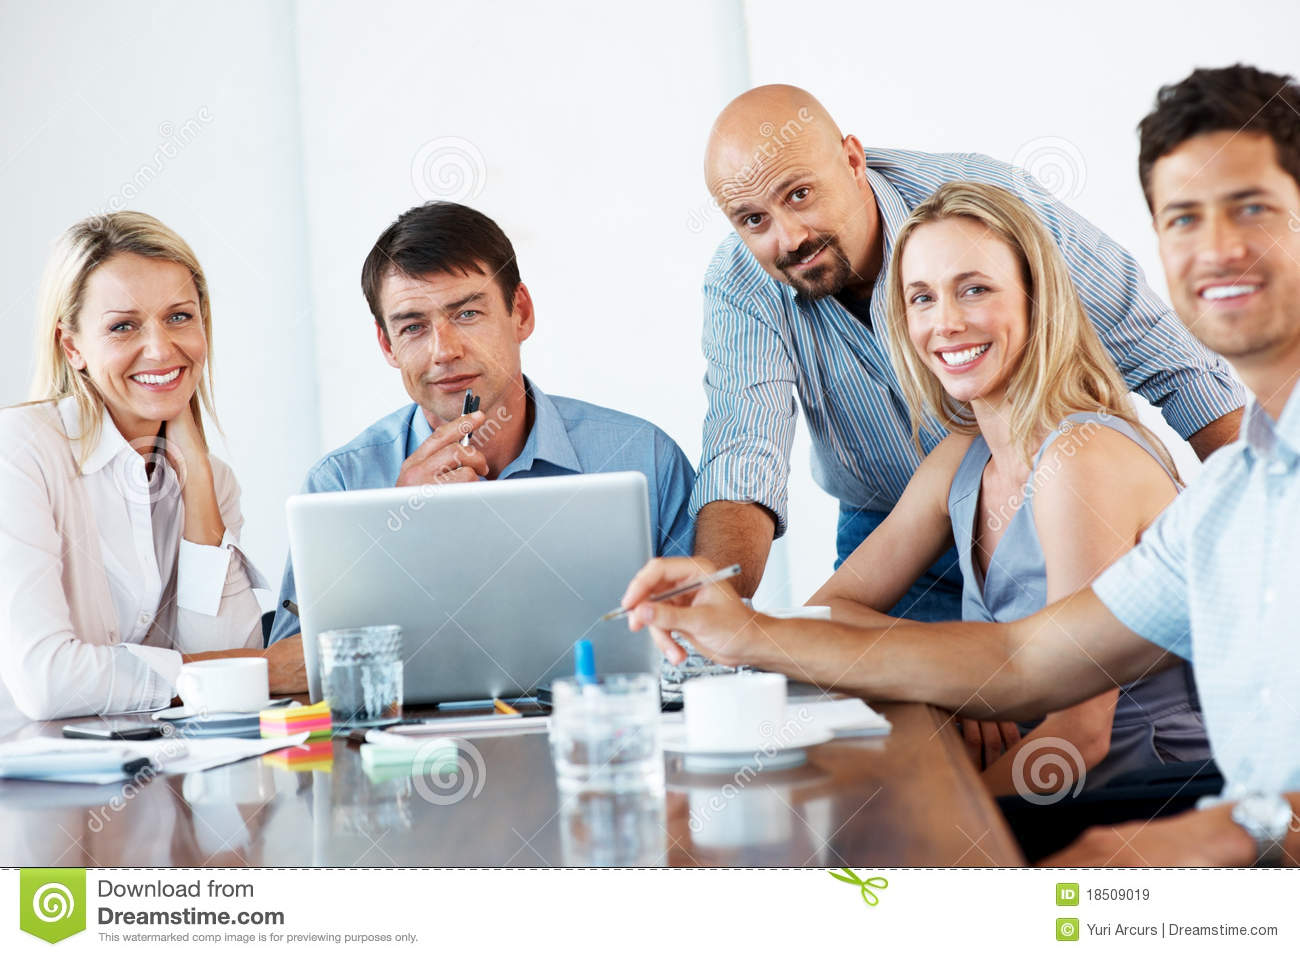 Royalty Free Stock Images: Smiling business people at meeting in ...